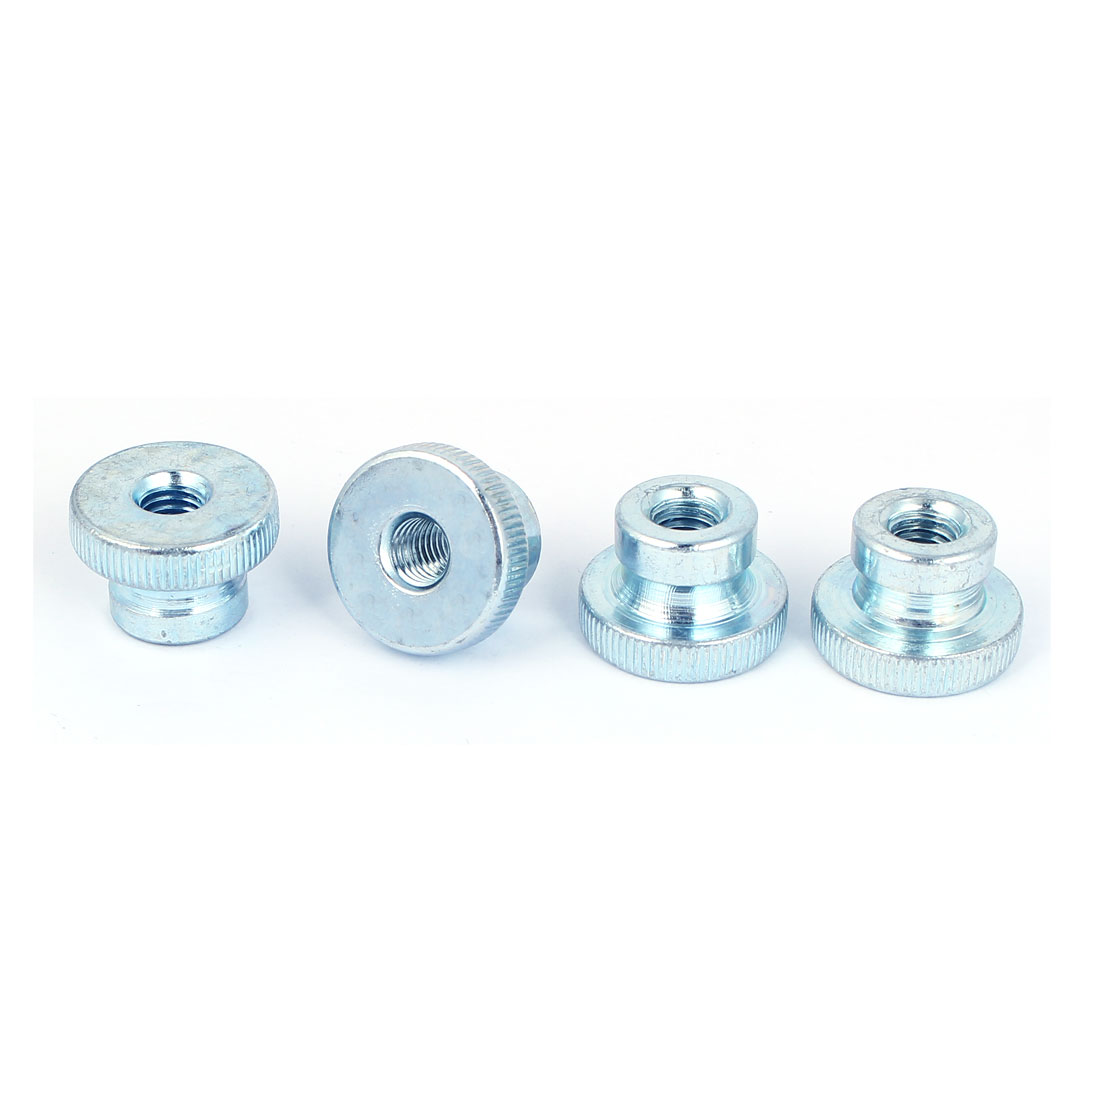 M8 Thread 16mm High Carbon Steel Round Knurled Head Thumb Nuts Silver Blue 4pcs